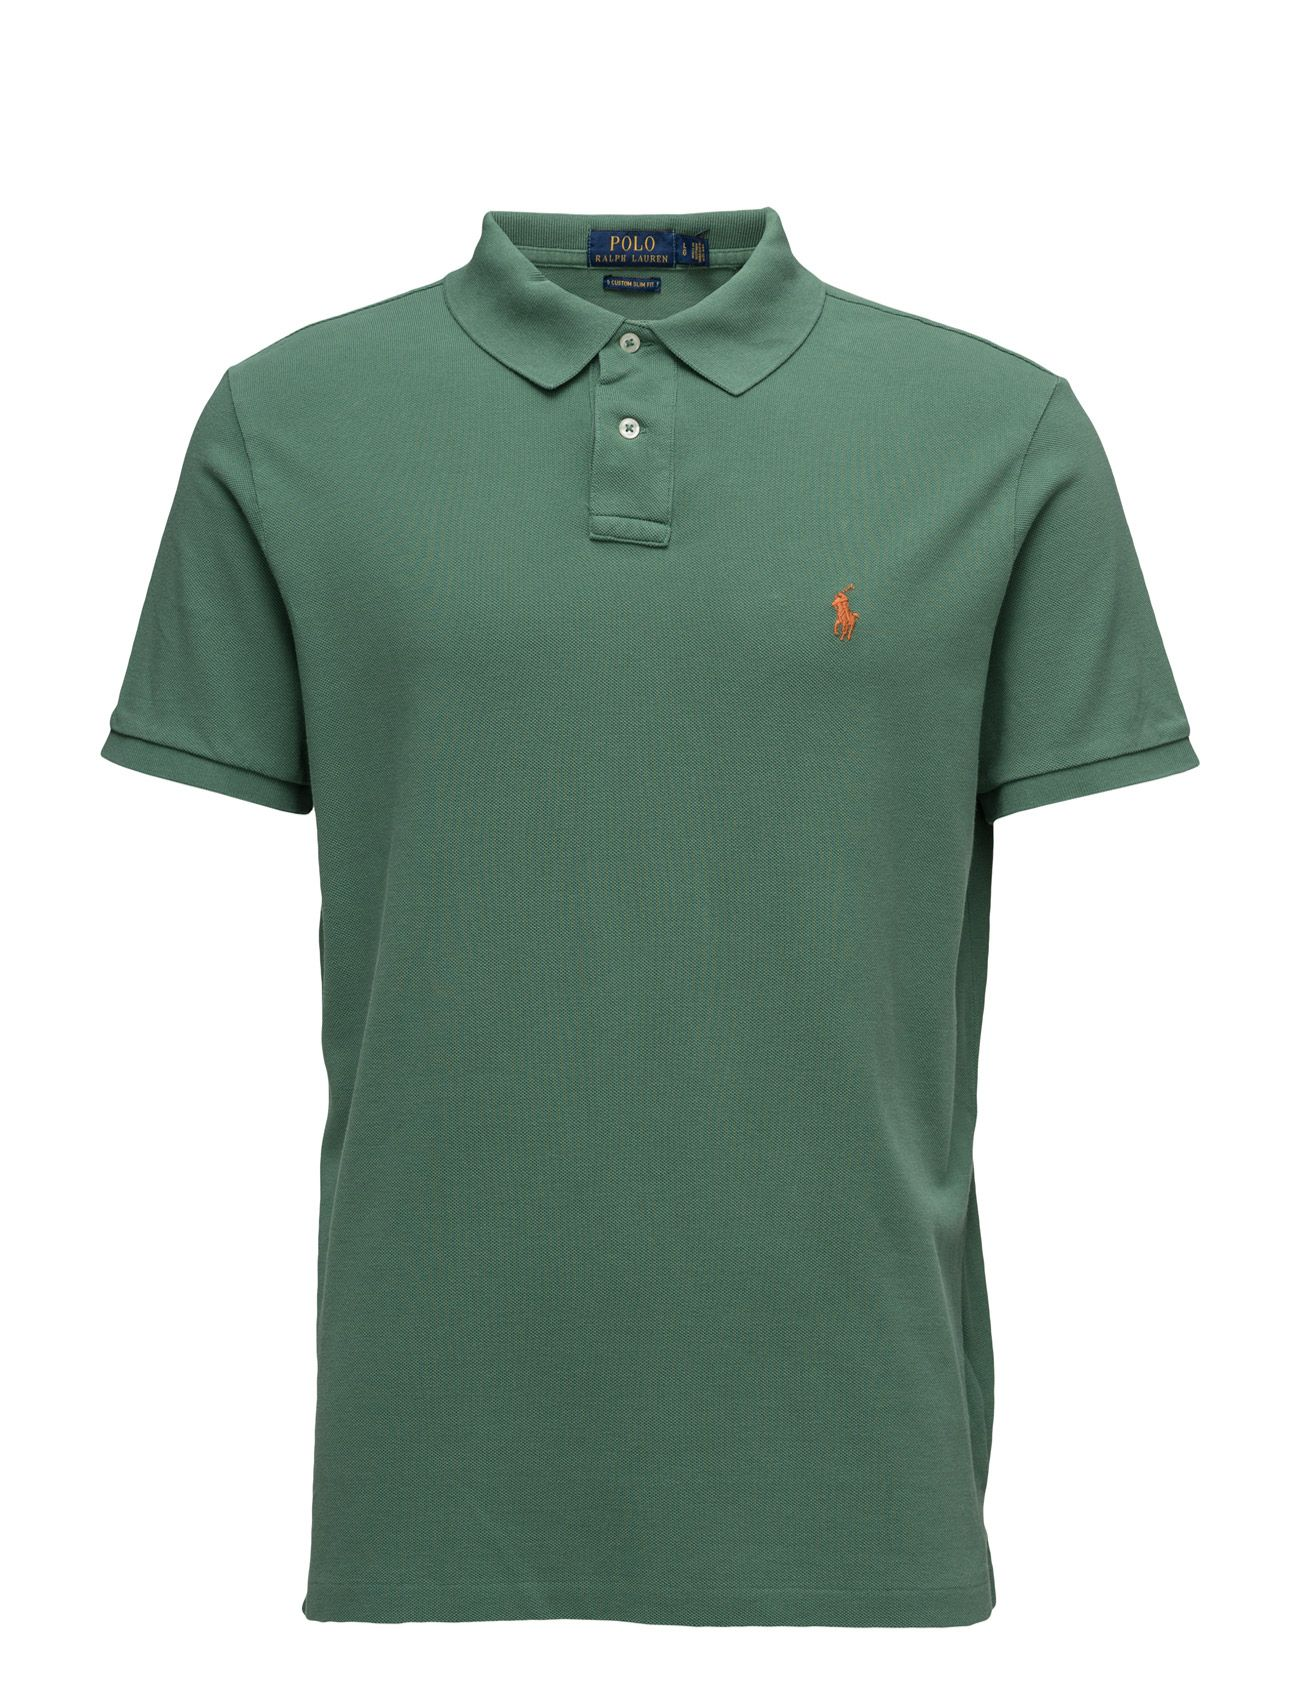 e7d48f03 polo ralph lauren custom slim fit weathered mesh polo antique green men  tops shirts short-sleeved,ralph lauren polo sale,Fast Worldwide Delivery,  ...